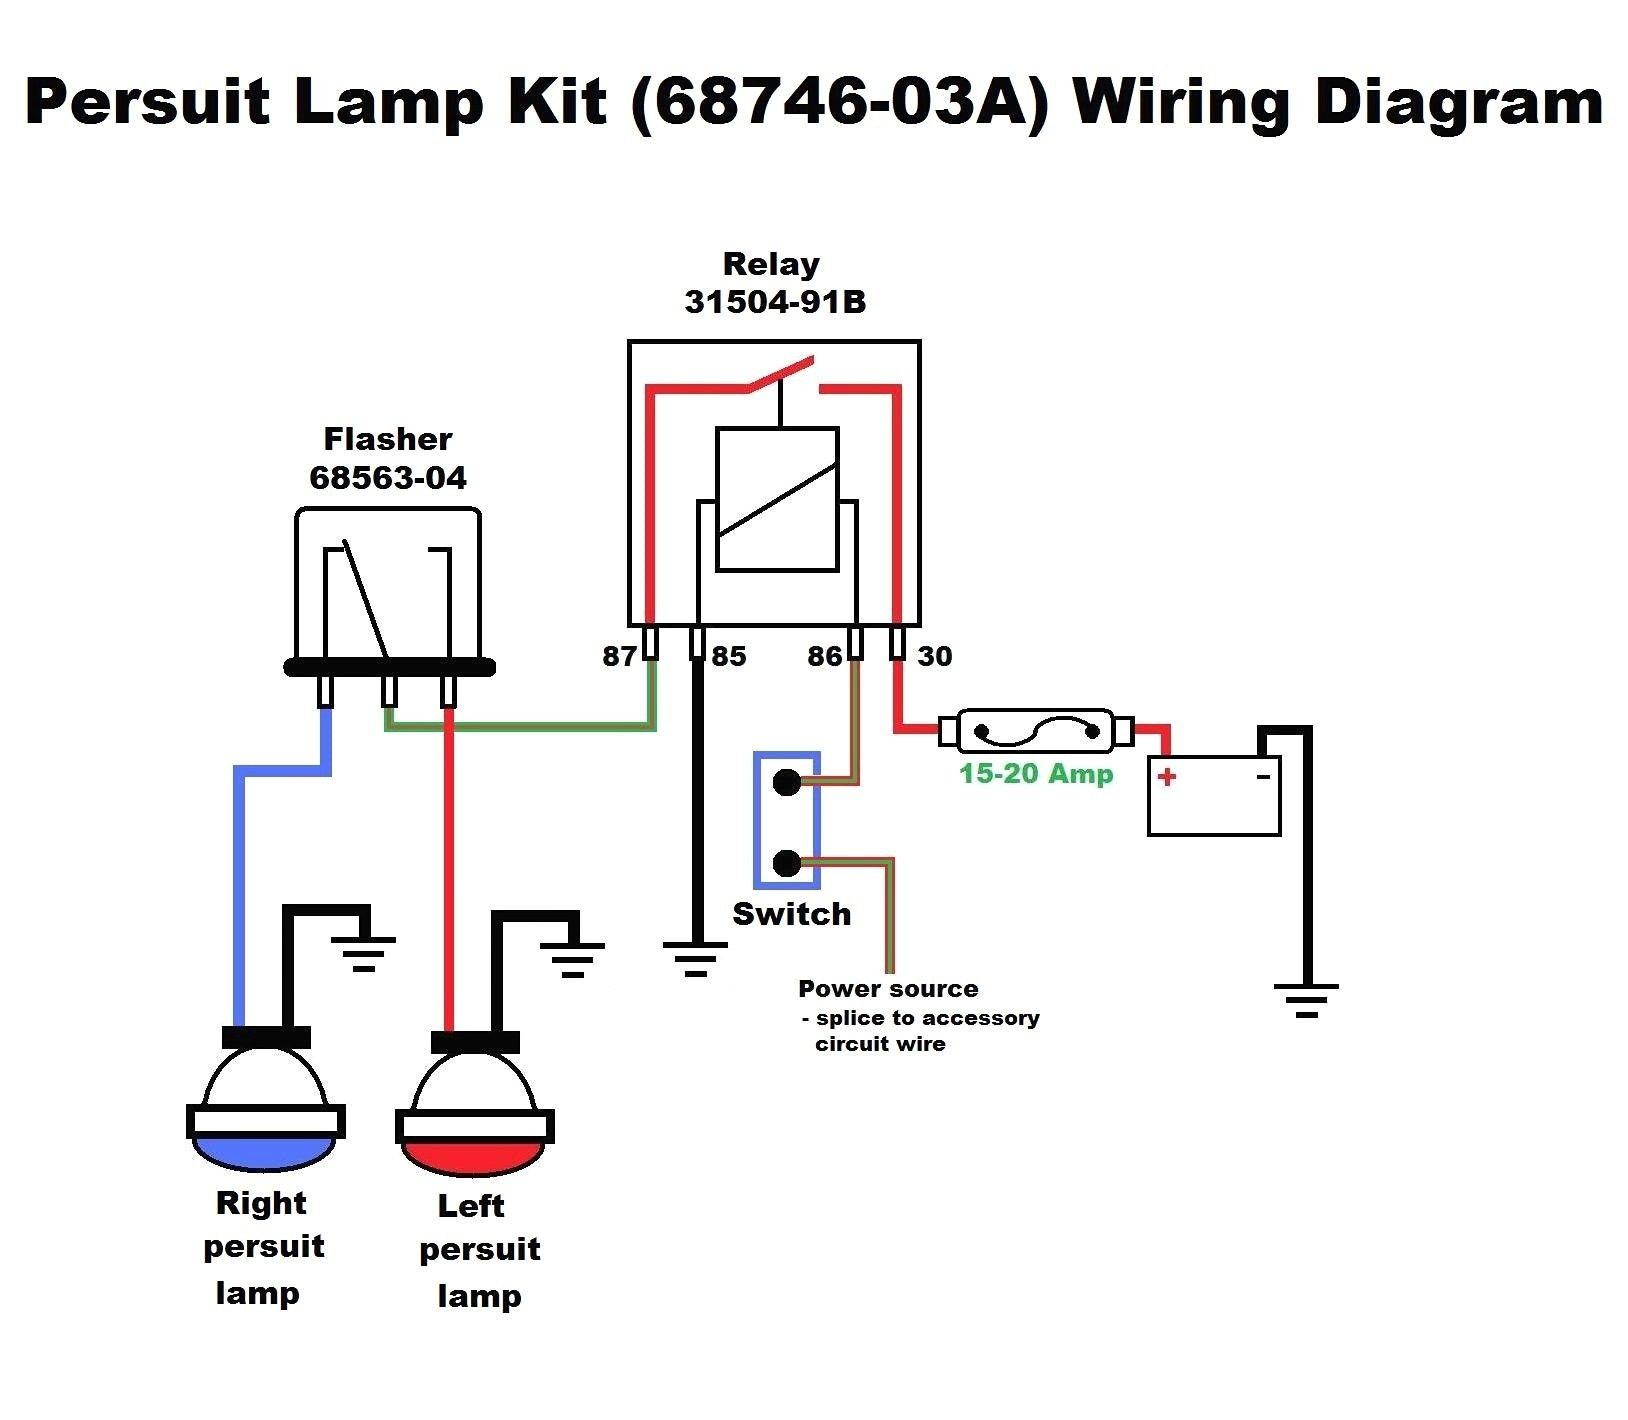 New Mercedes Glow Plug Relay Wiring Diagram